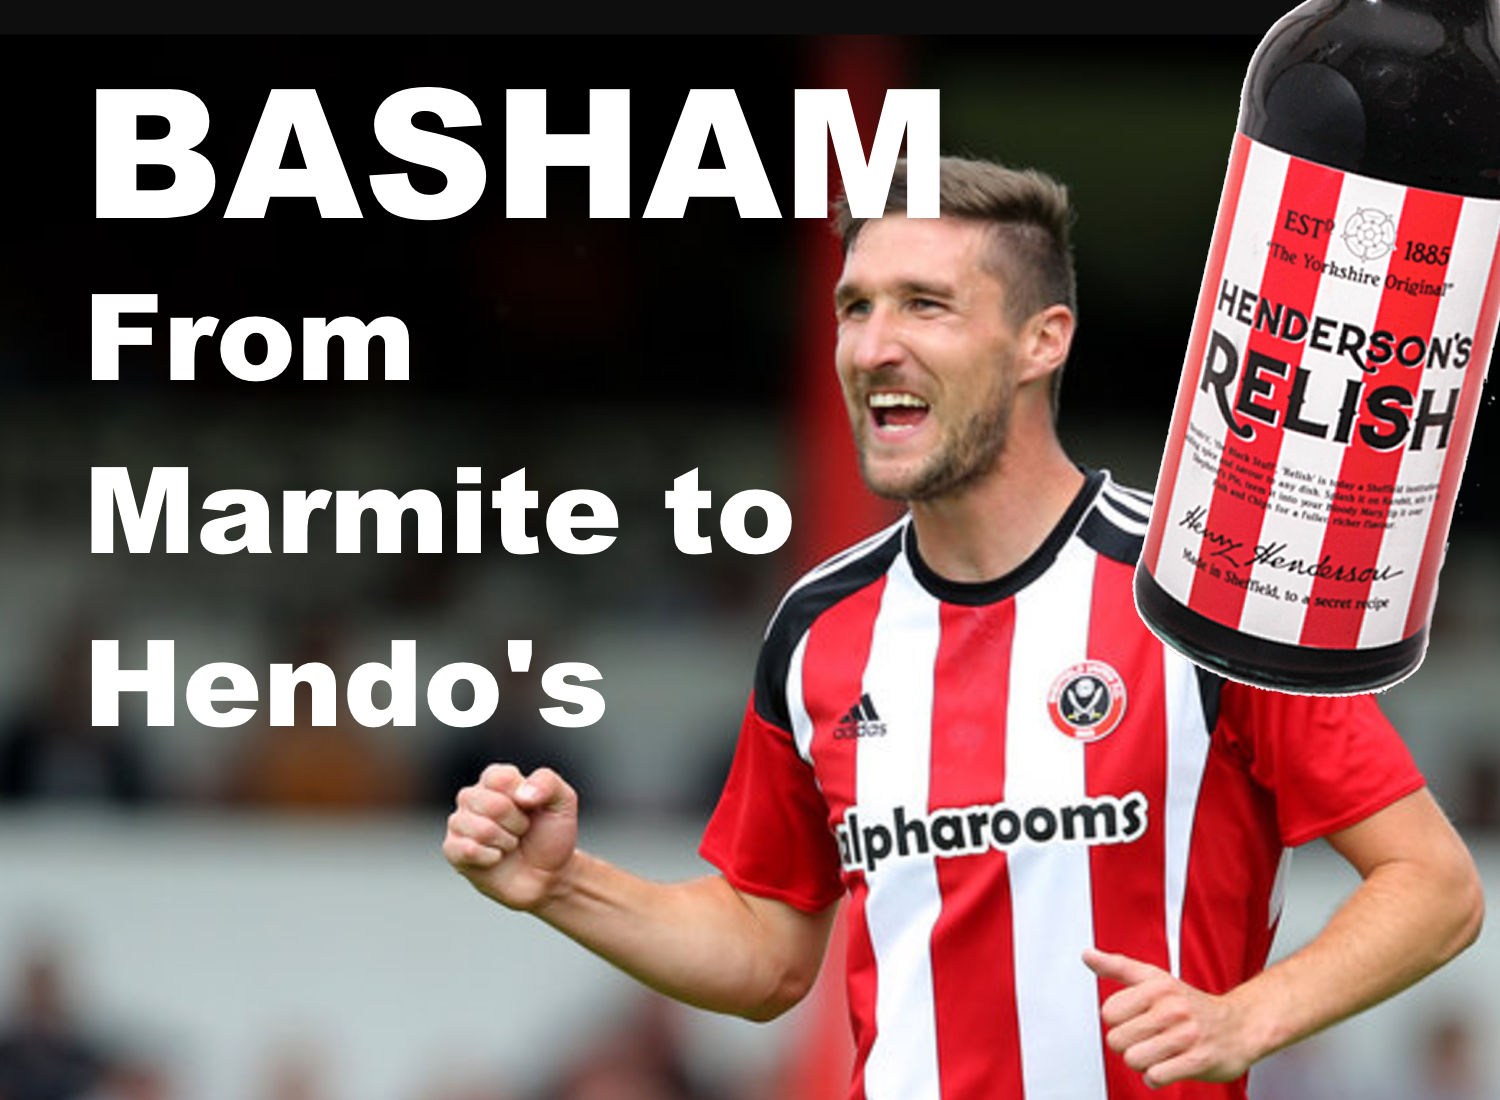 Sheffield United defender Chris Basham goes from zero to hero at Bramall Lane in Sheffield United's promotion bid